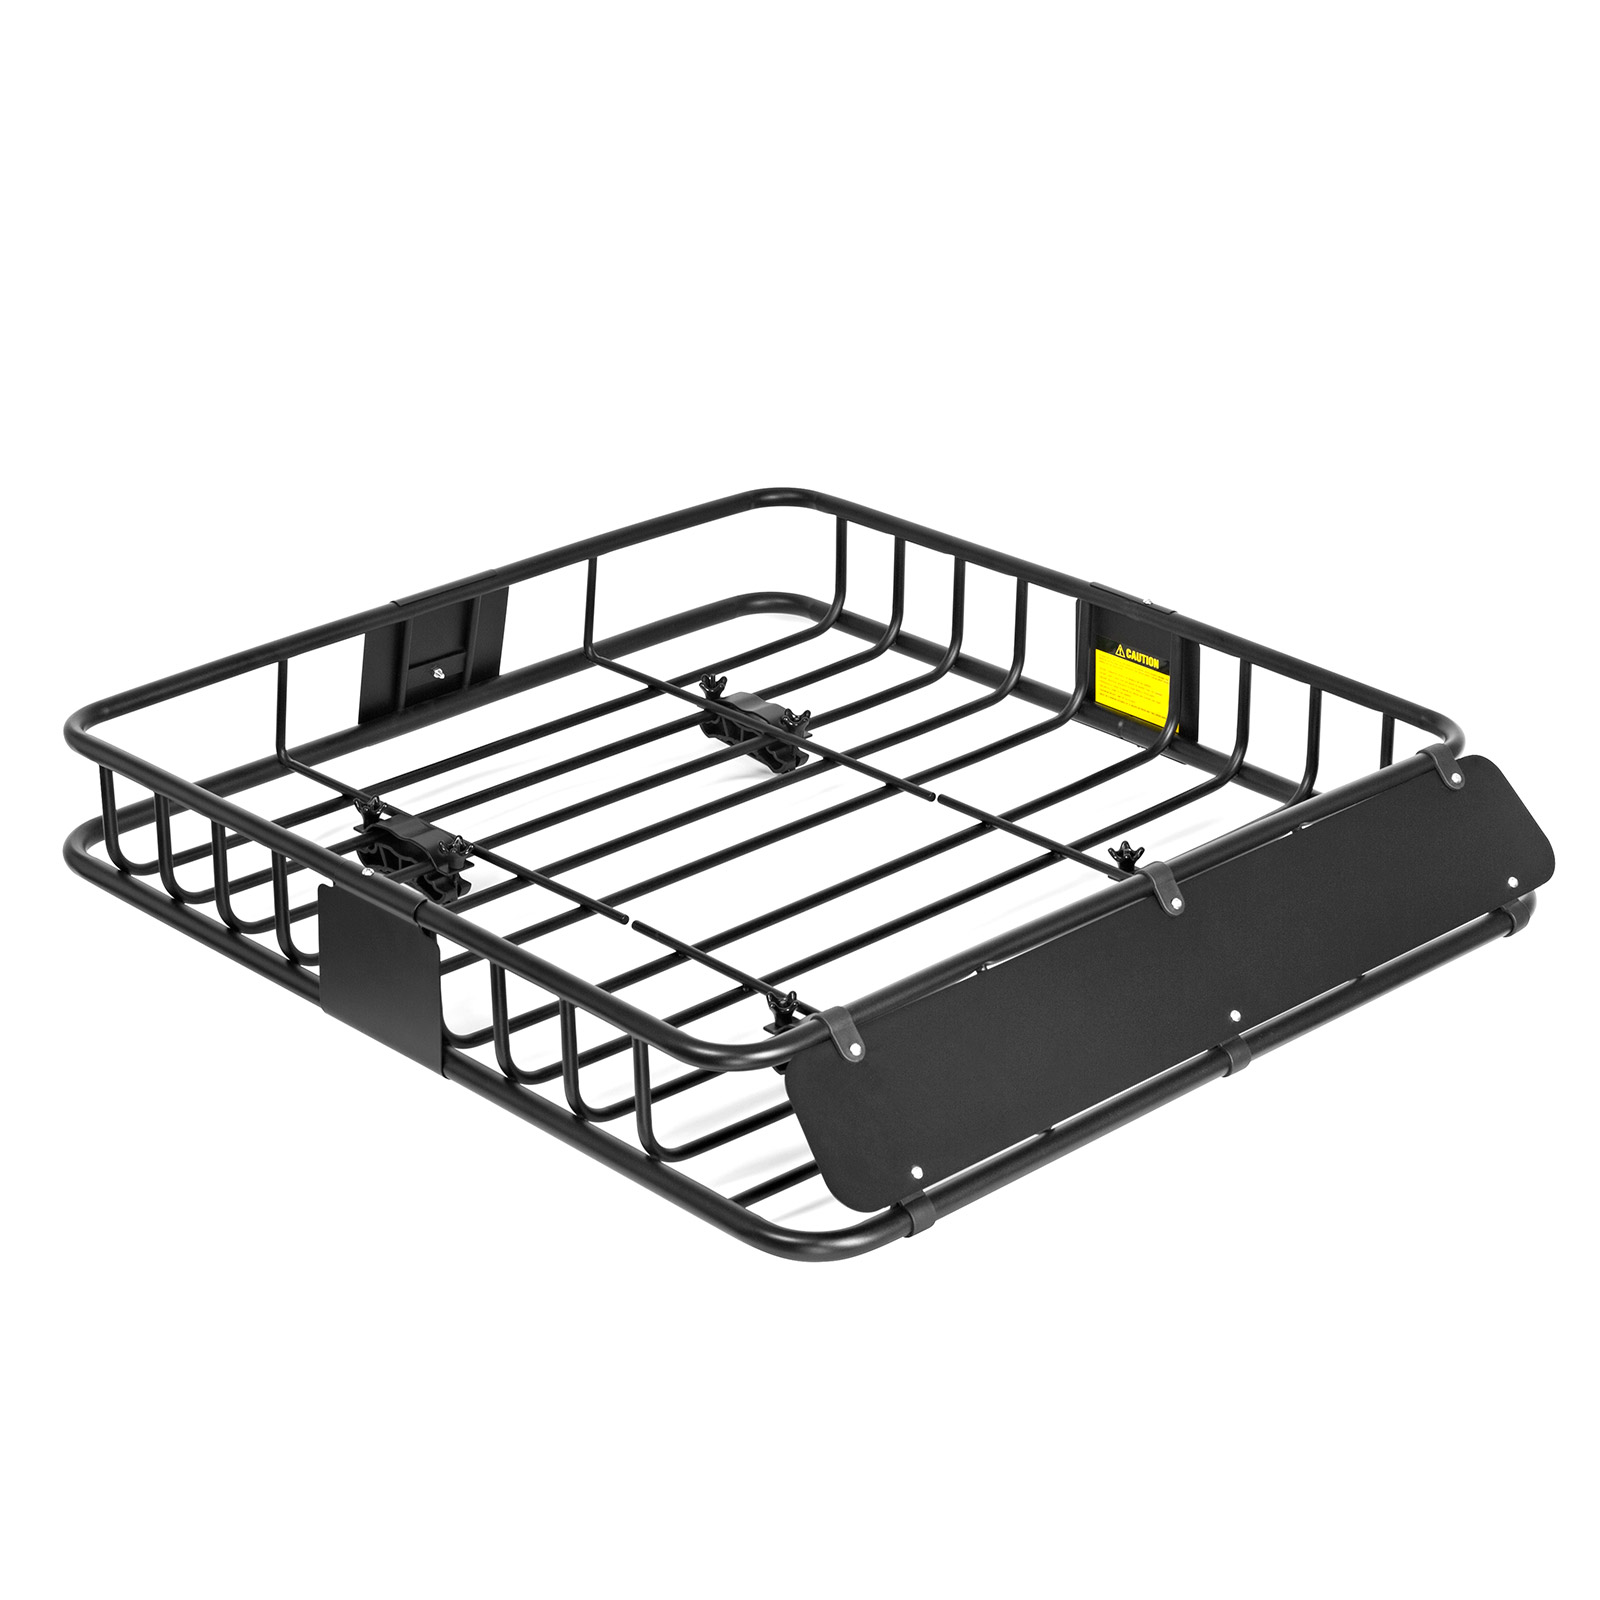 details about universal roof rack cargo carrier car suv van top luggage holder travel